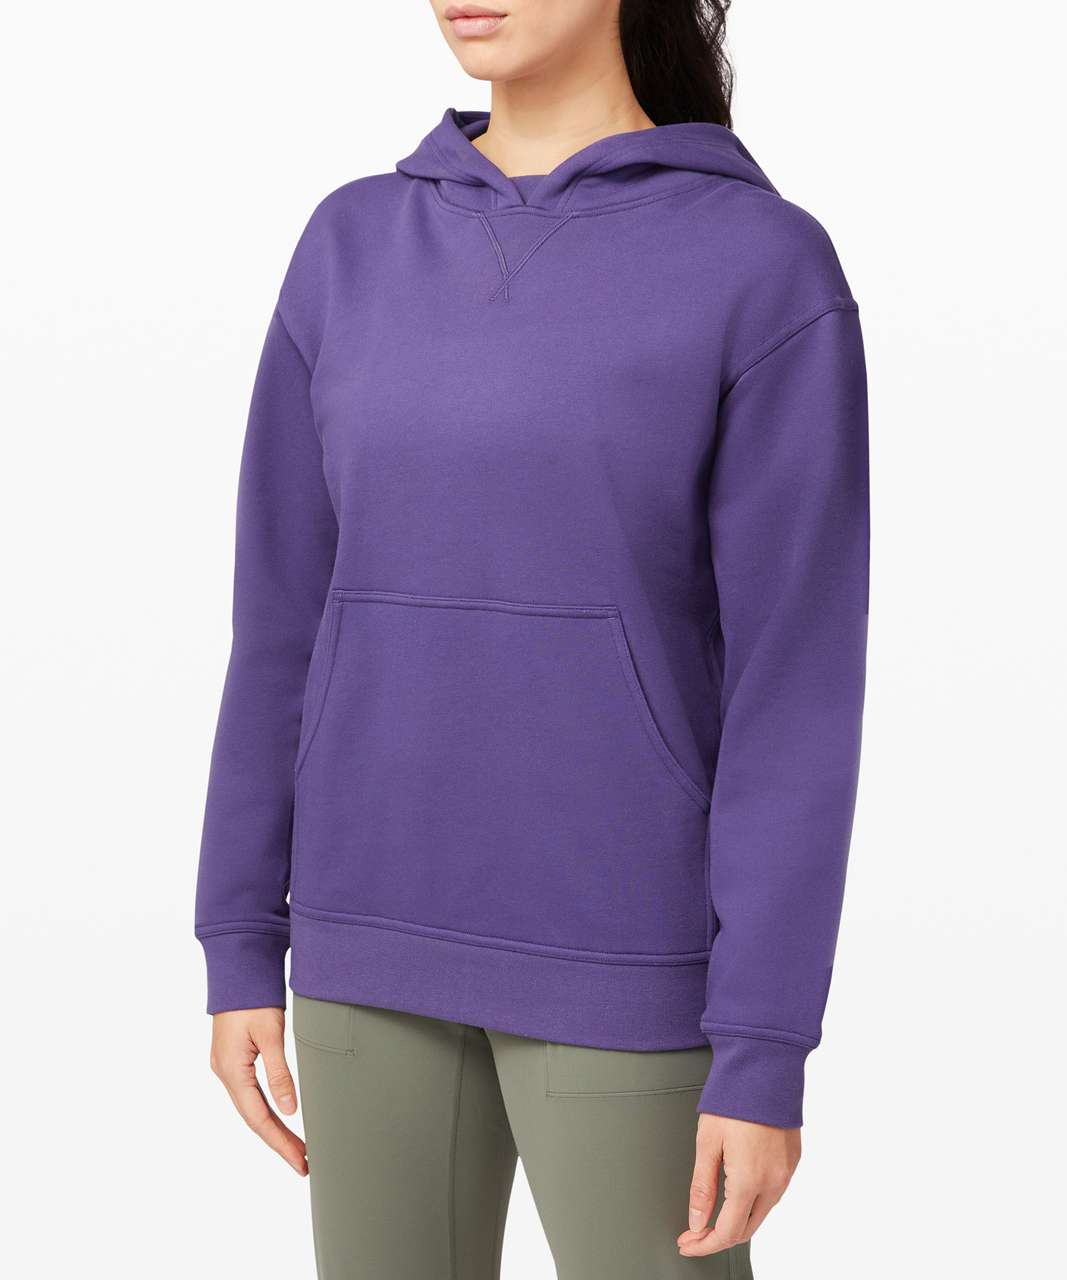 Lululemon All Yours Hoodie *Terry - Midnight Orchid